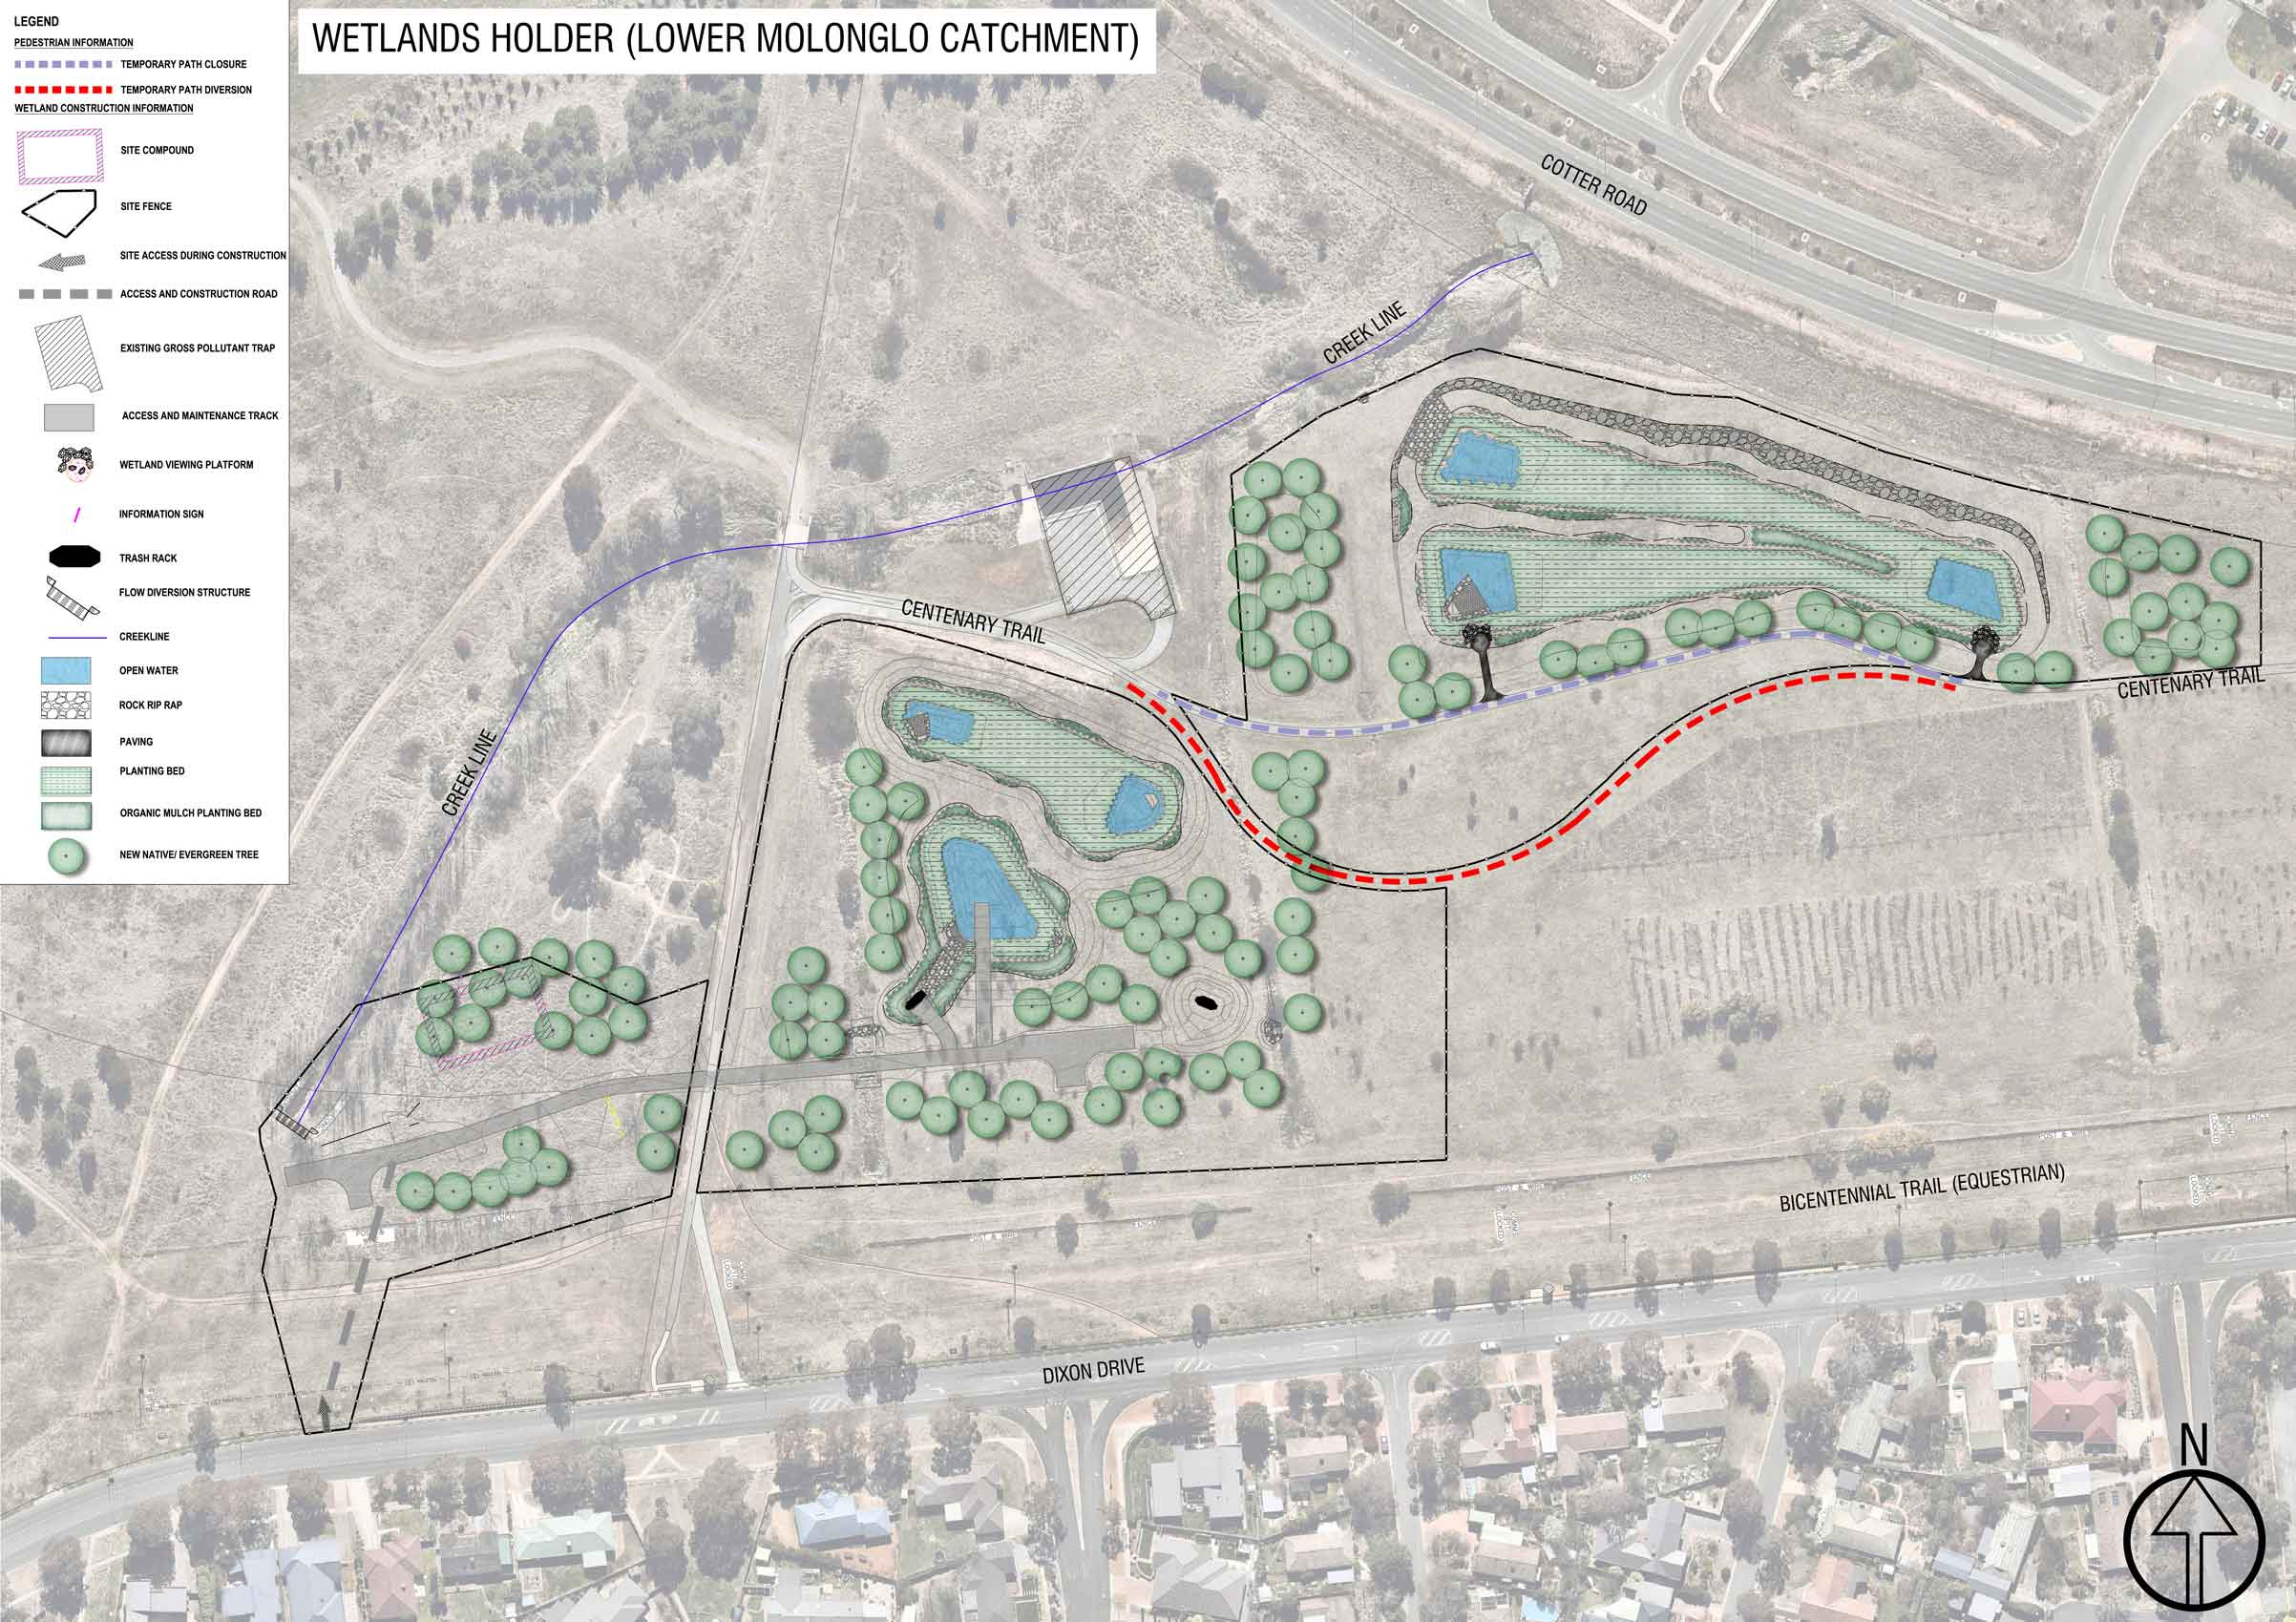 Wetlands landscape design plan